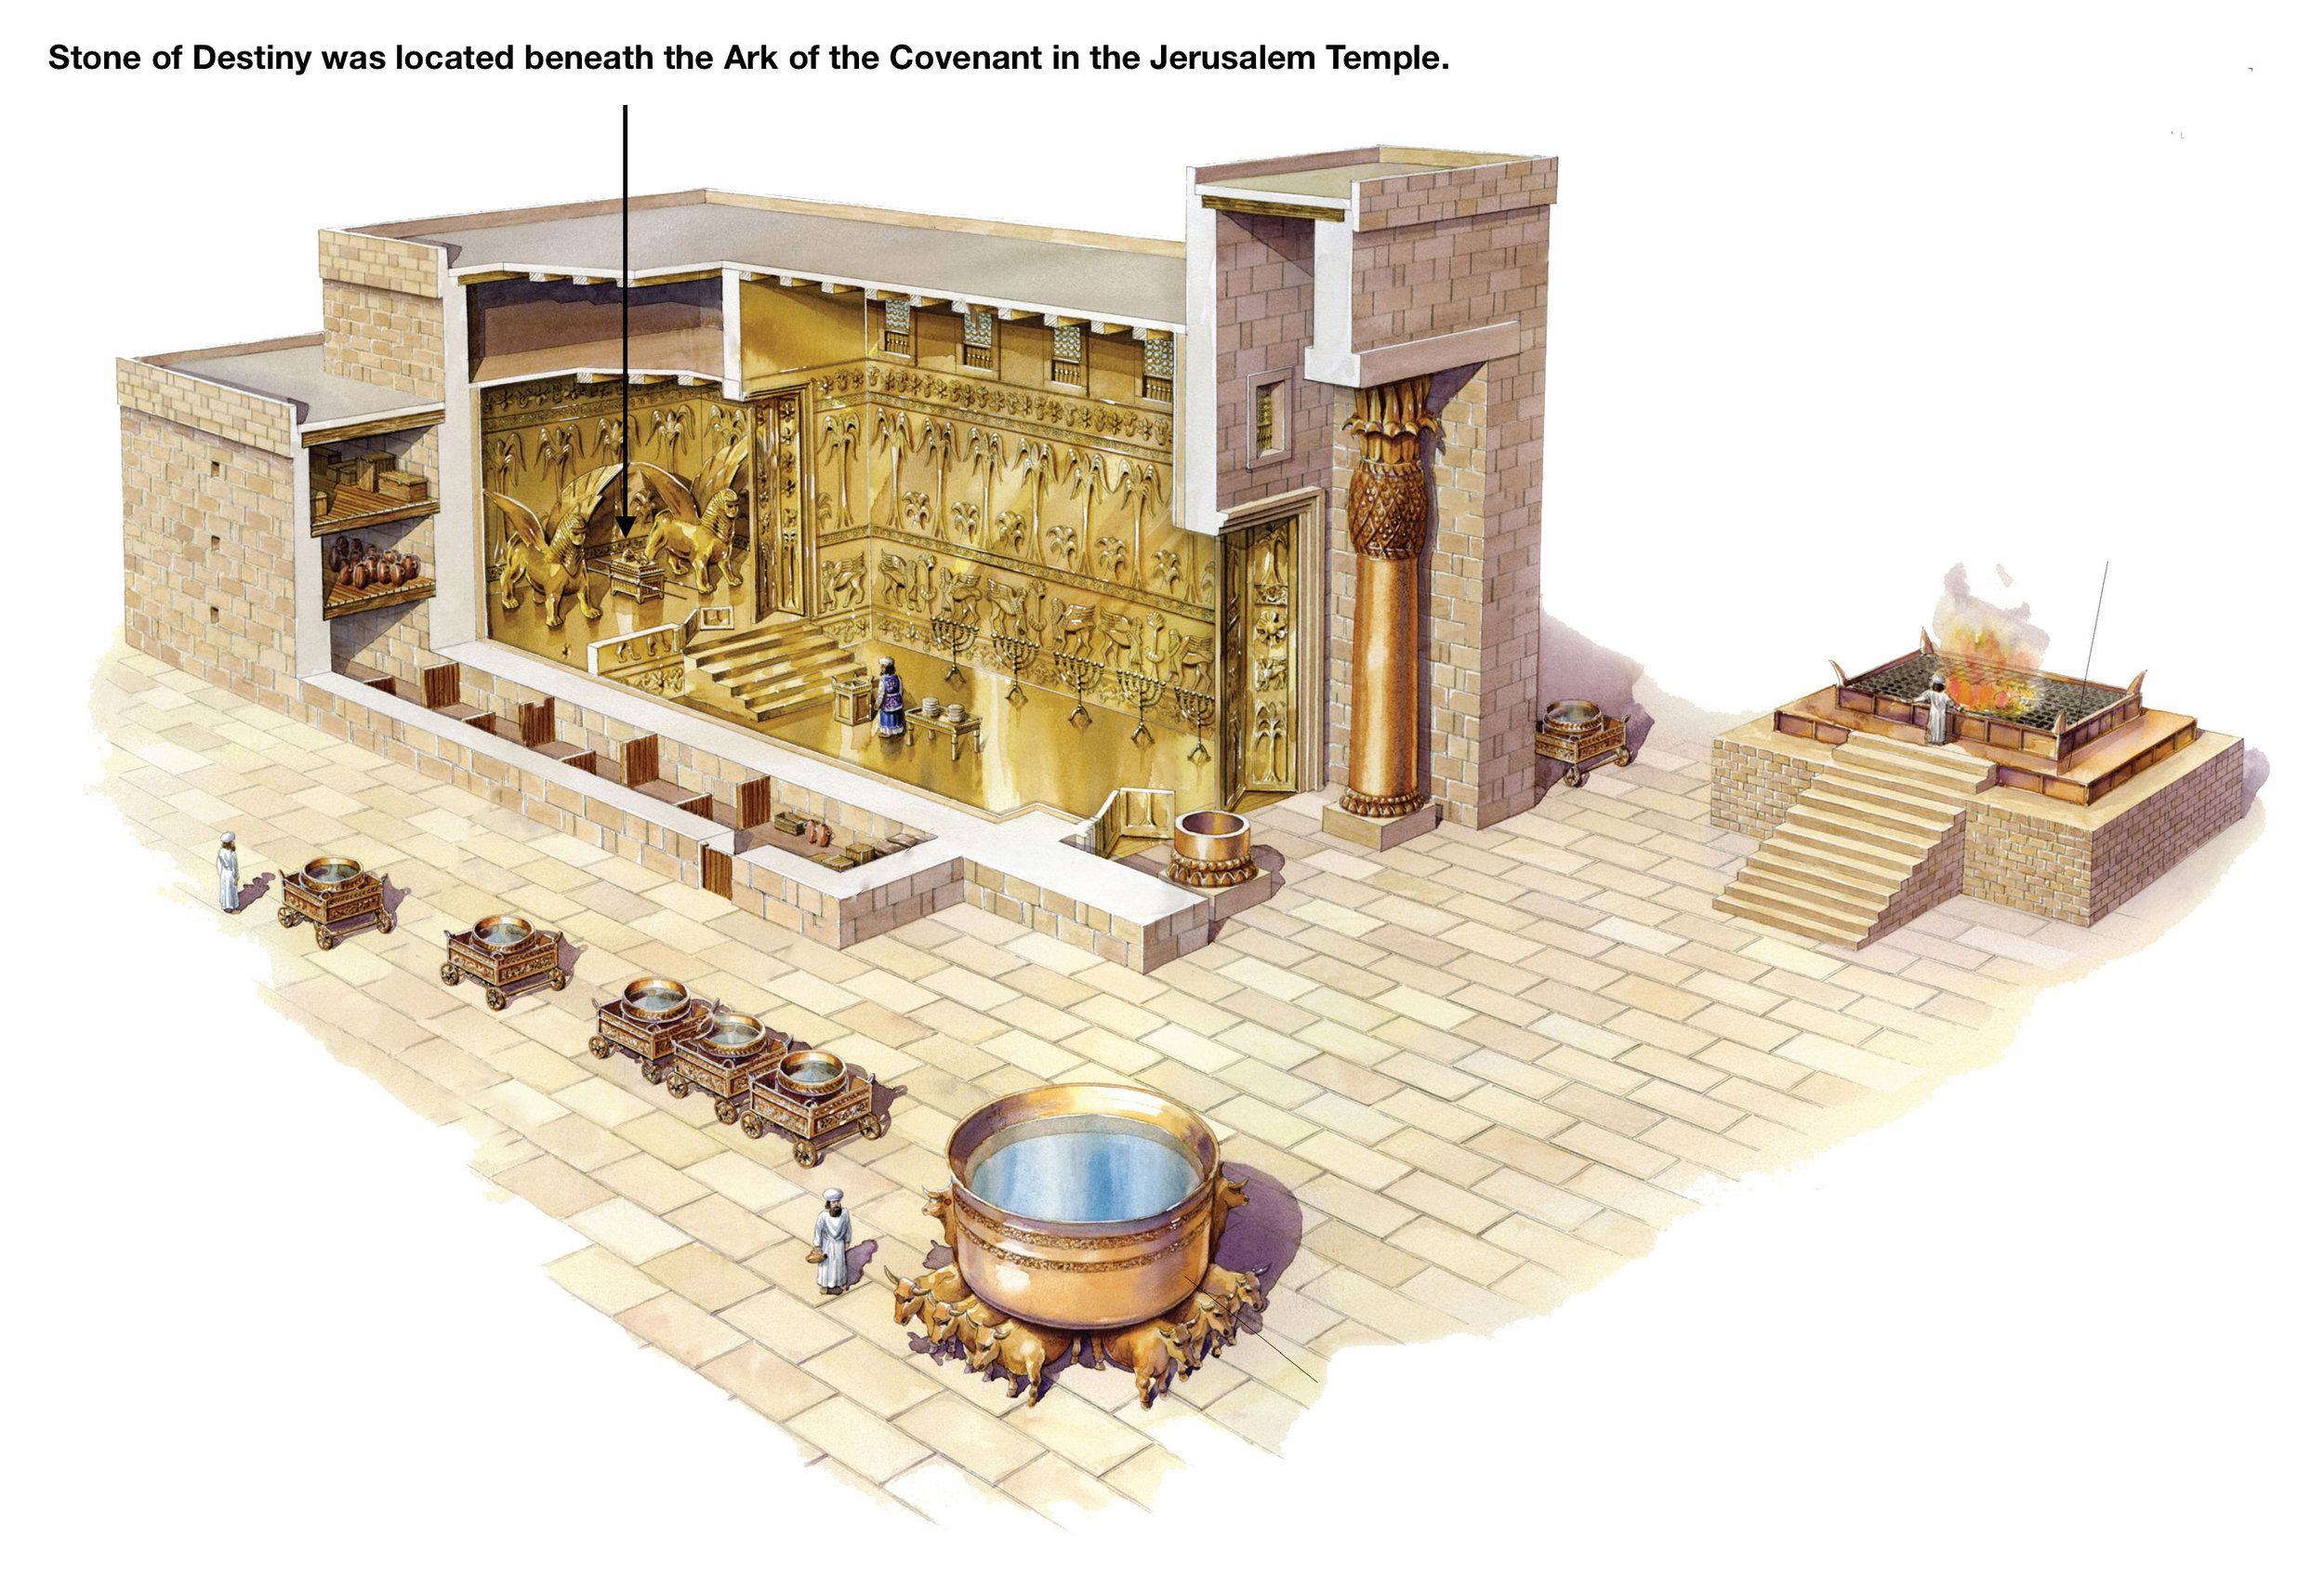 According to Jewish lore the Lia Fáil was situated beneath the Ark of the Covenant in the Holy of Holies at the centre of Solomon's Temple.